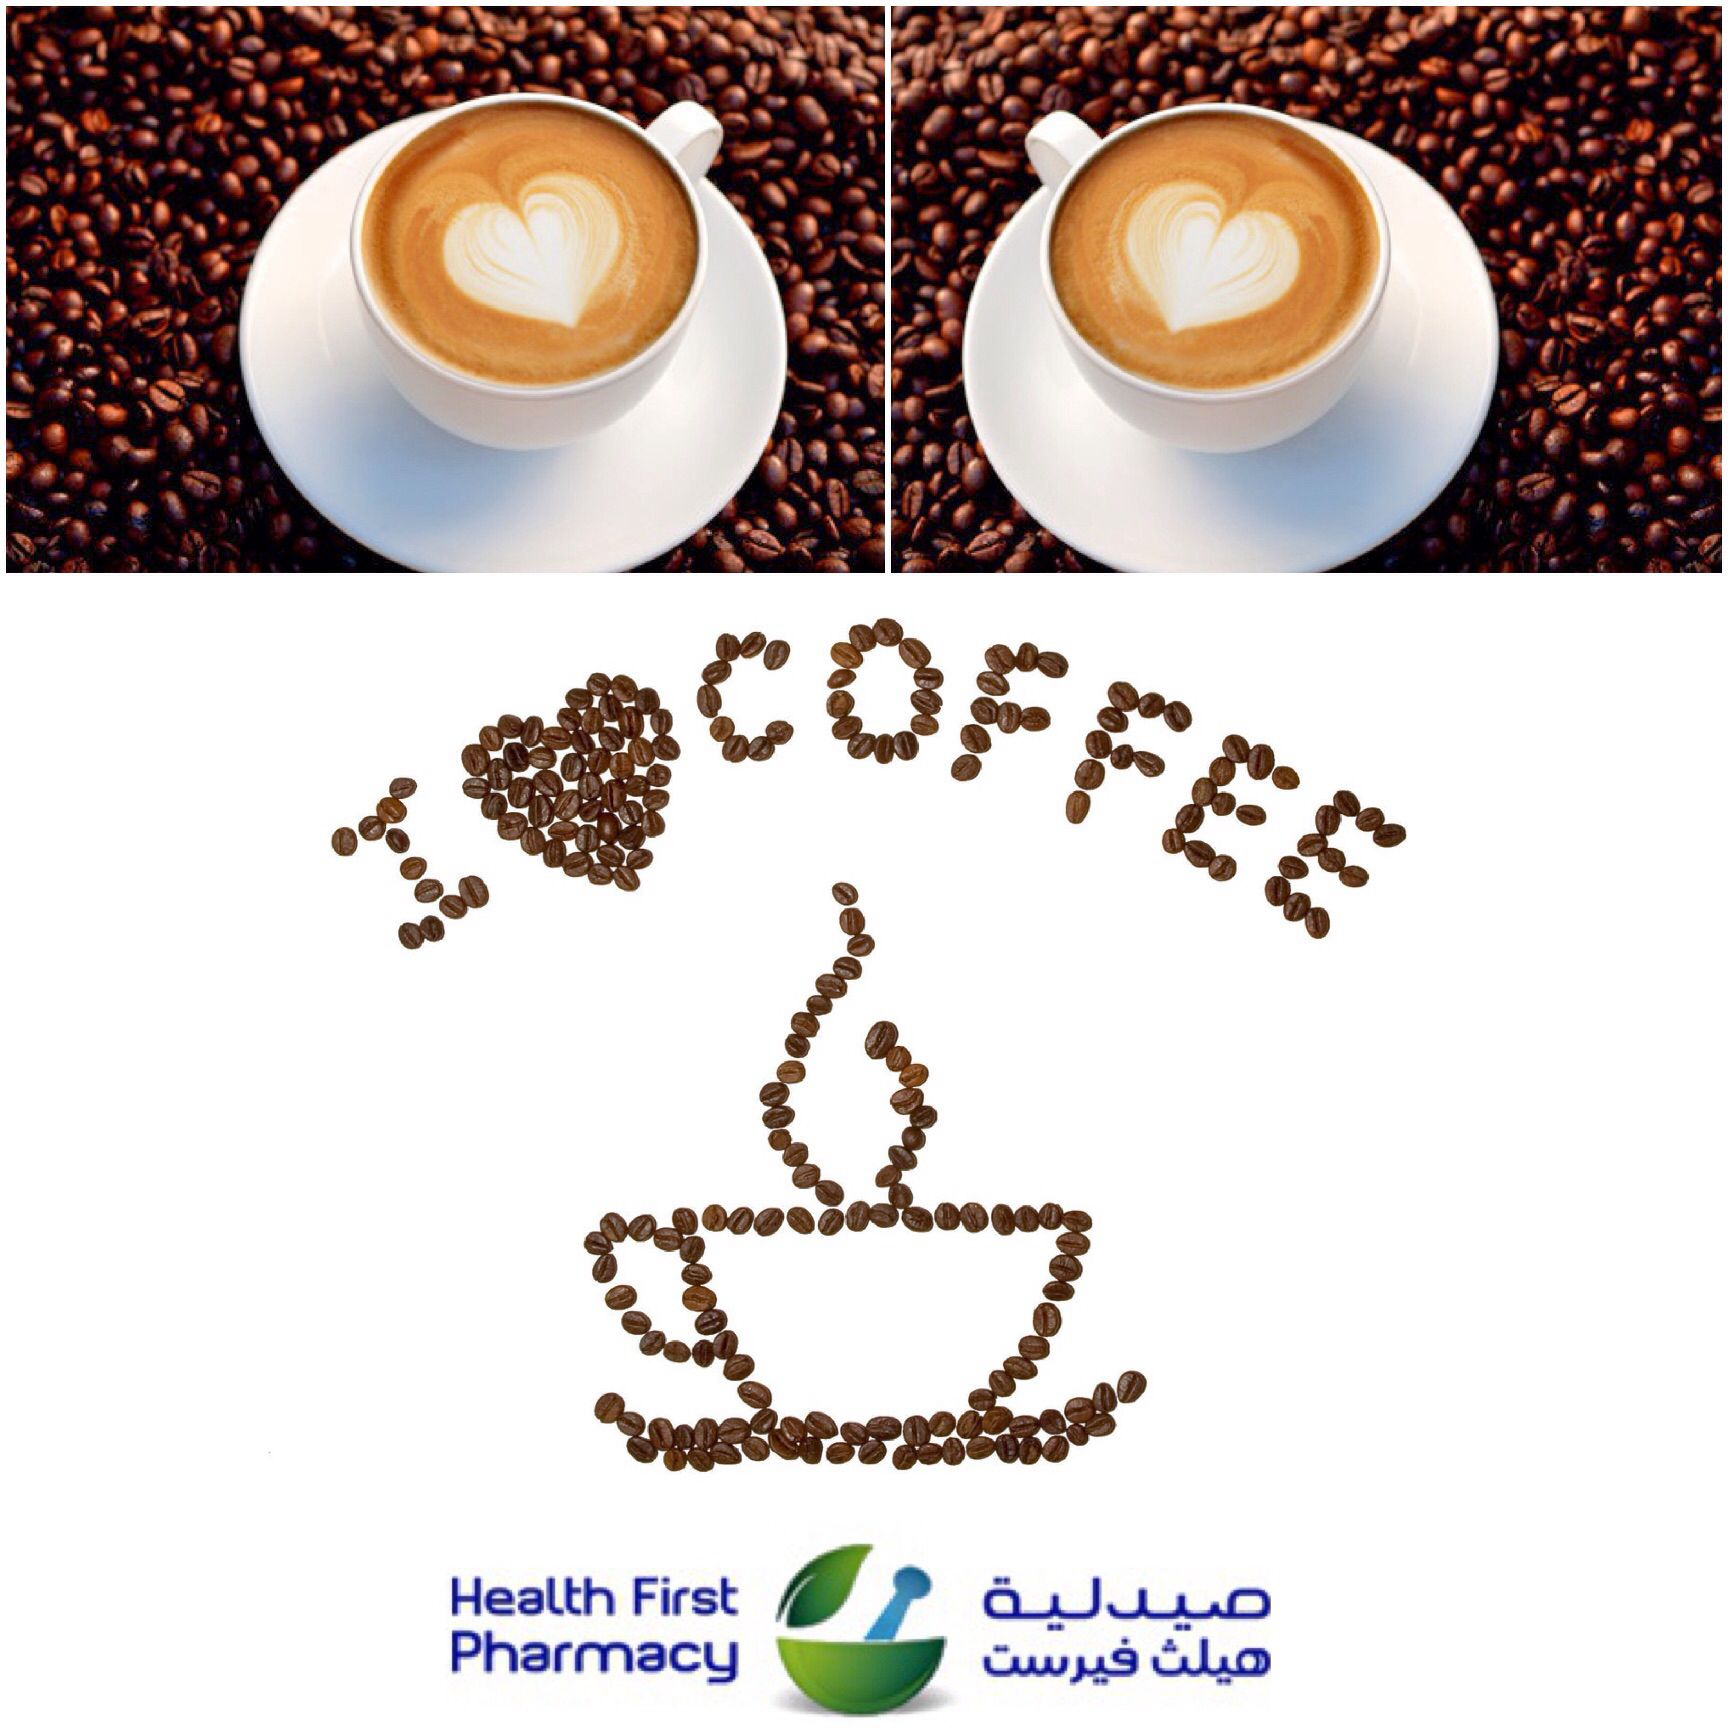 Are you a coffee lover good news there is a study that